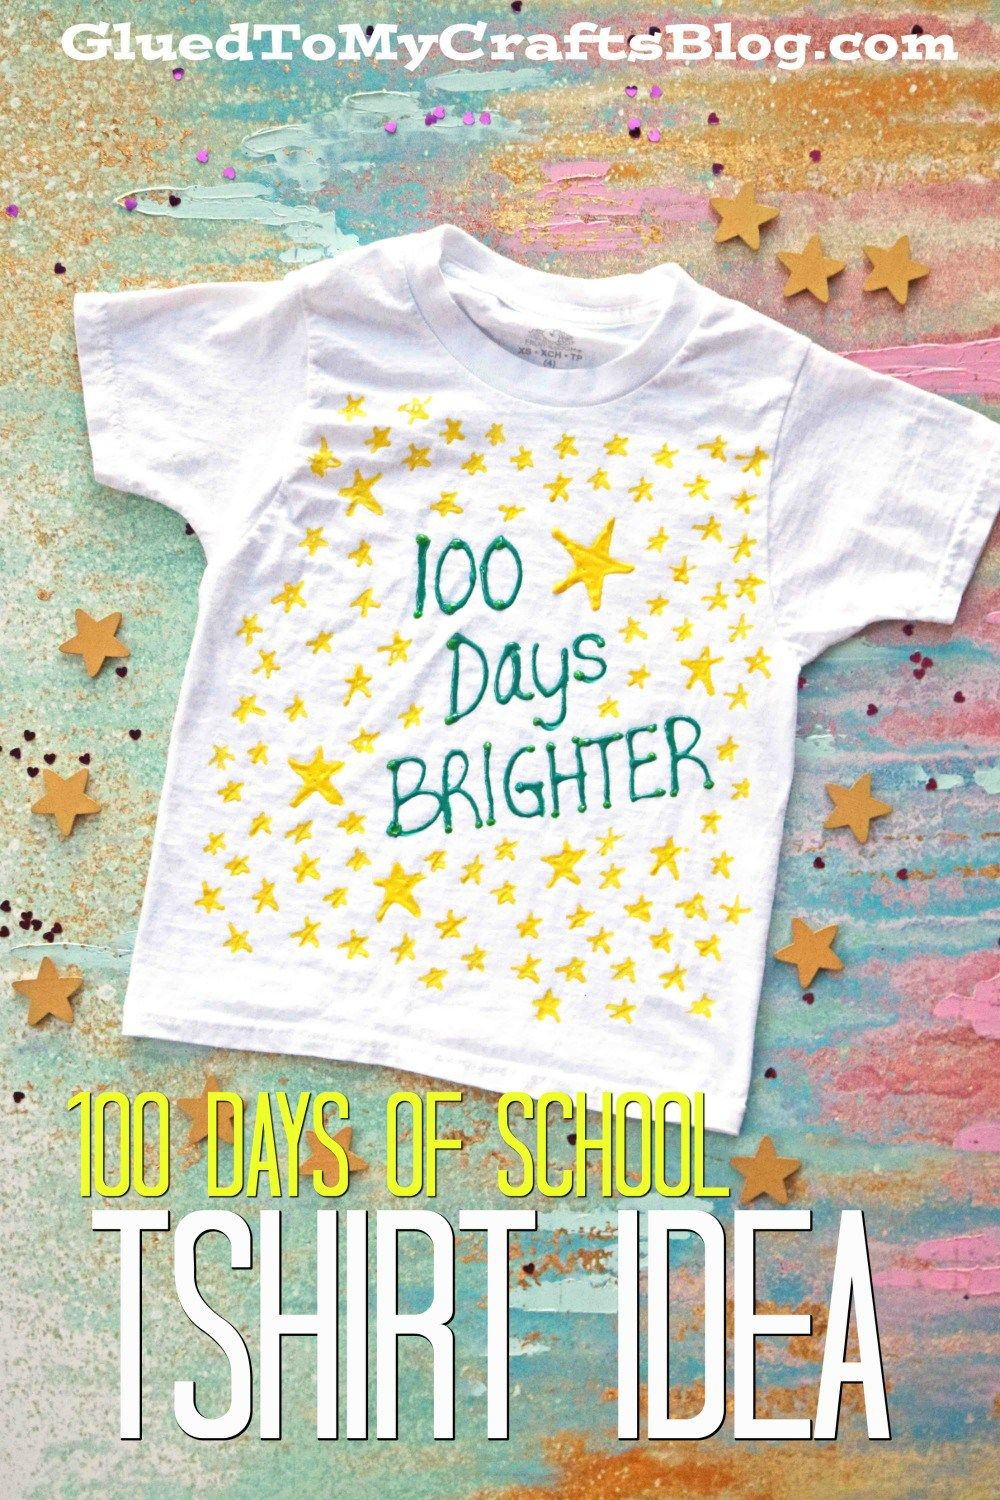 Diy 100 Days Brighter T Shirt Craft Idea For Kids To Make With